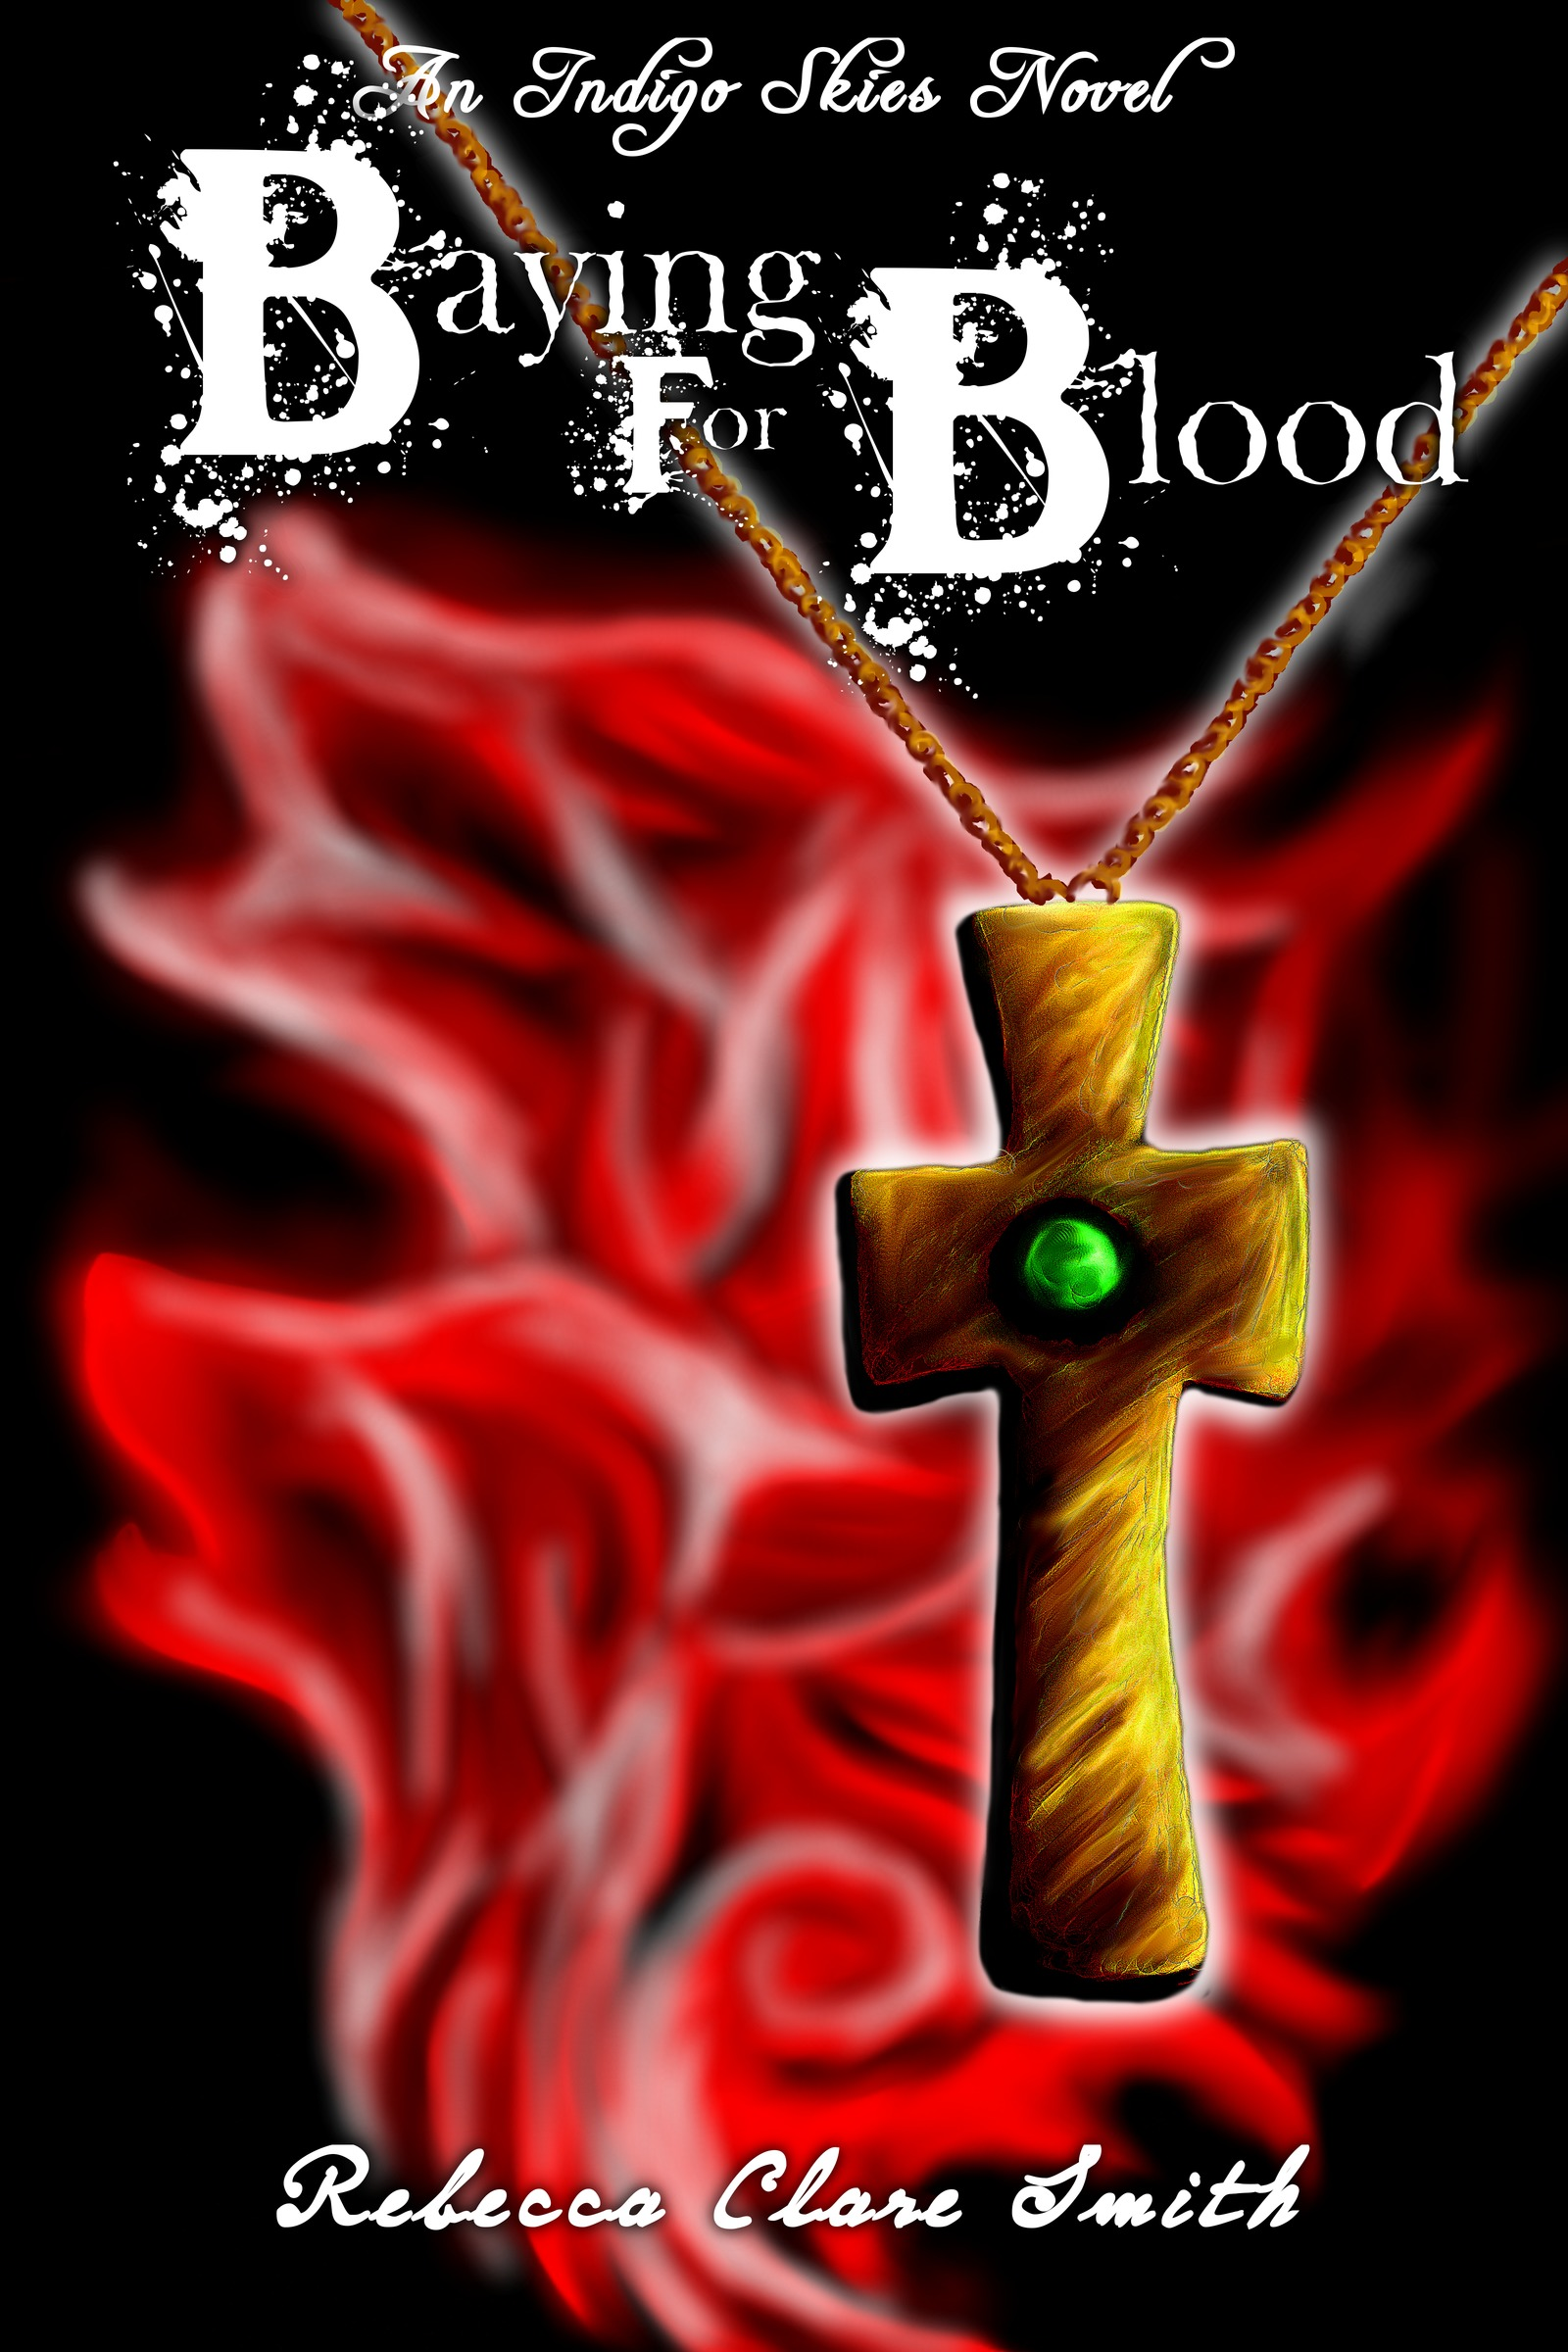 Baying For Blood Chapter 1